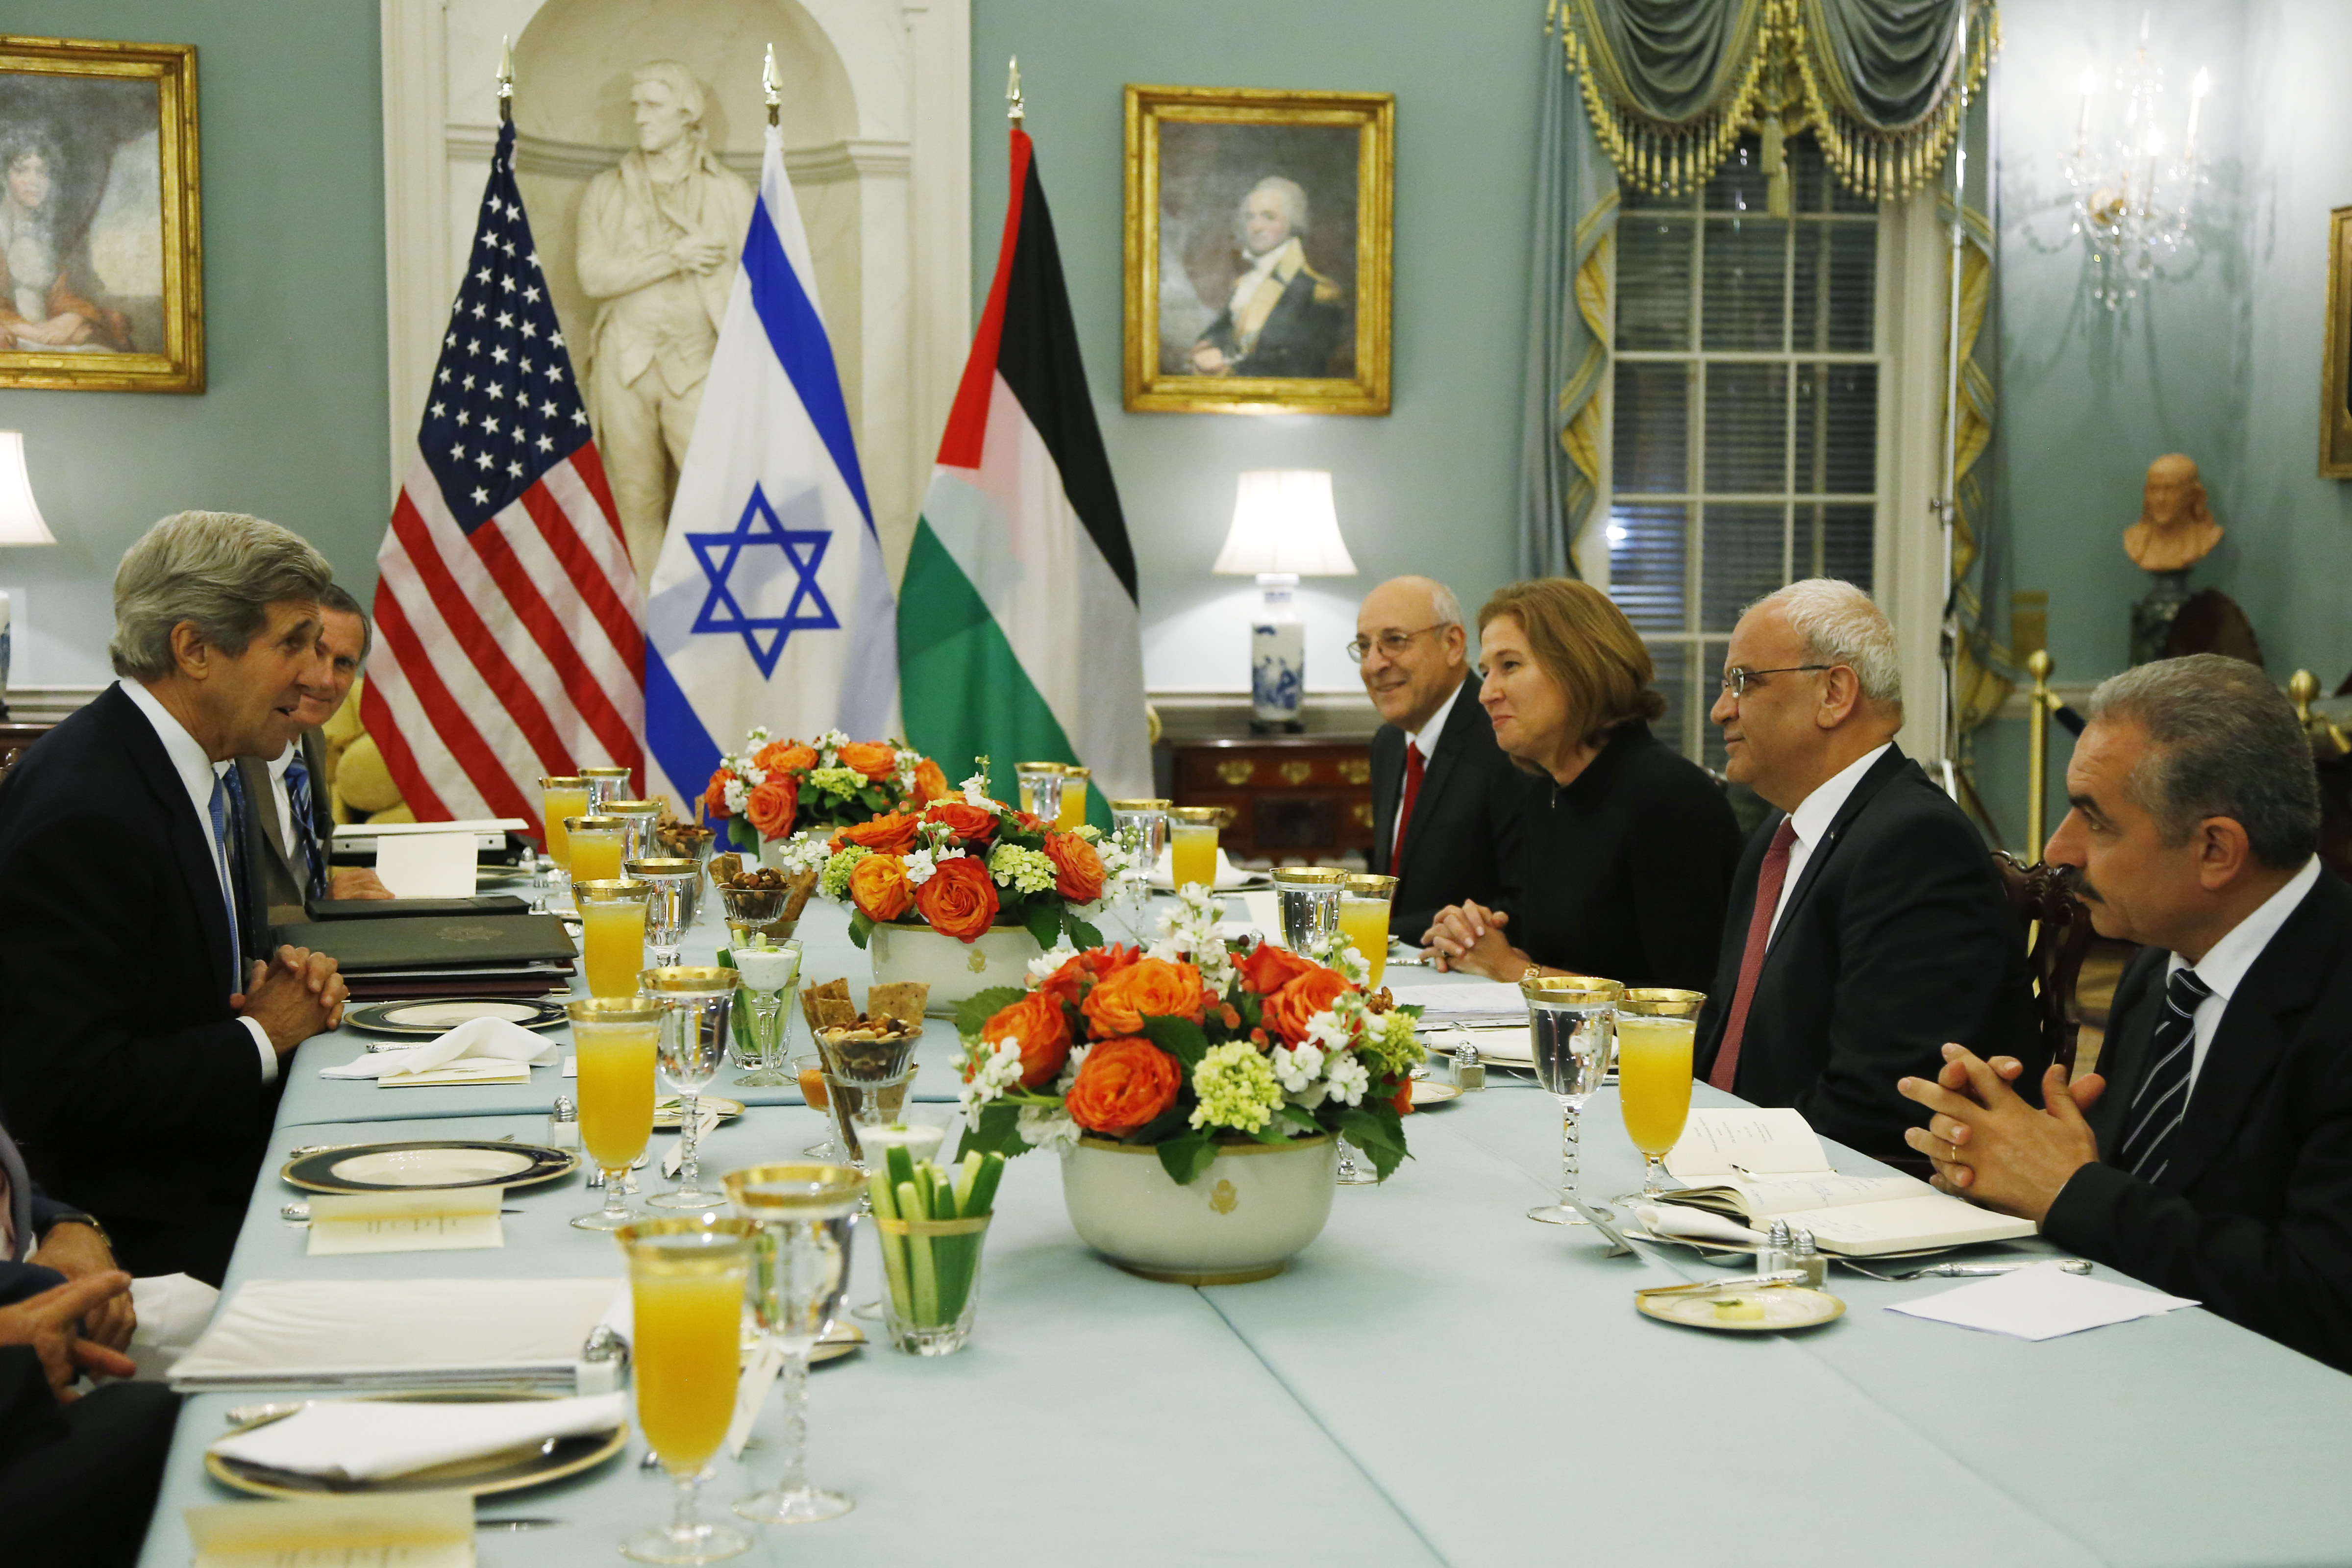 Secretary of State John Kerry, left, sits across from Israel's Justice Minister and chief negotiator Tzipi Livni, third right, Palestinian chief negotiator Saeb Erekat, second right, Yitzhak Molcho, an adviser to Israeli Prime Minister Benjamin Netanyahu, fourth right, and Mohammed Shtayyeh, aide to Palestinian President Mahmoud Abbas, right, at an Iftar dinner at the State Department in Washington, July 29, 2013.